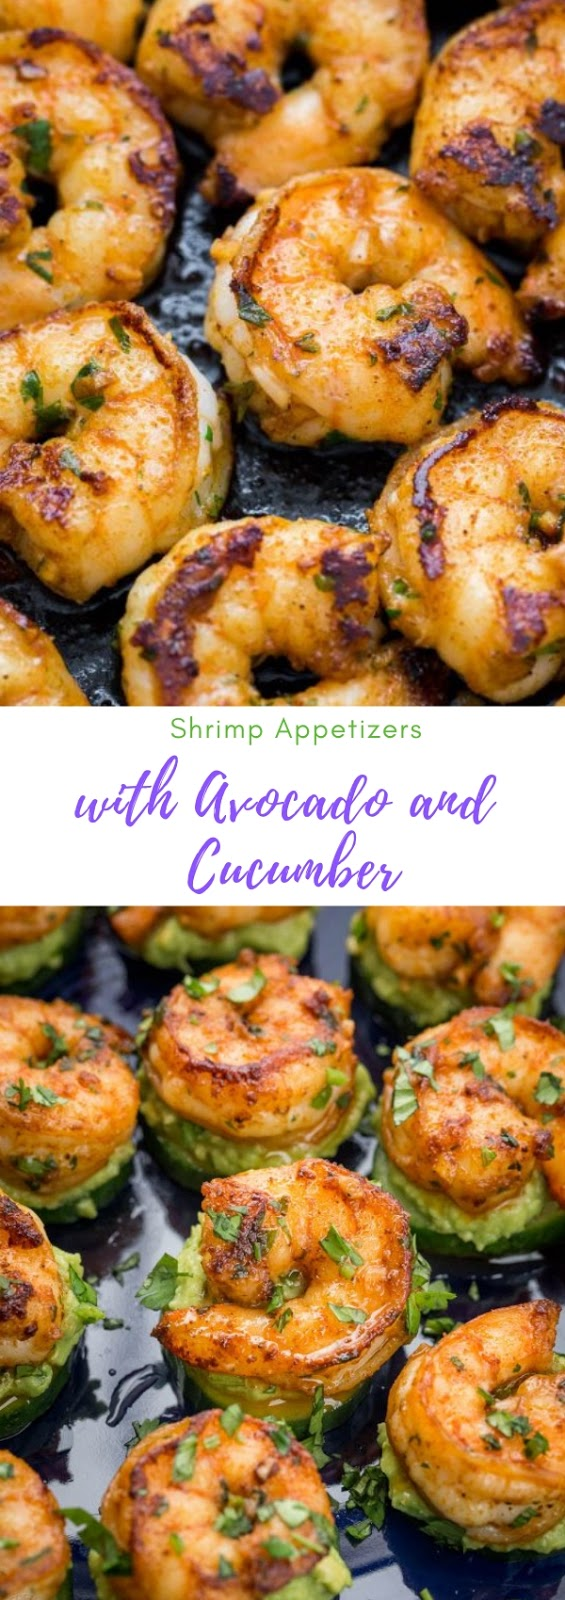 Shrimp Appetizers with Avocado and Cucumber #shrimp #appetizer #avocado #cucumbar #vegan